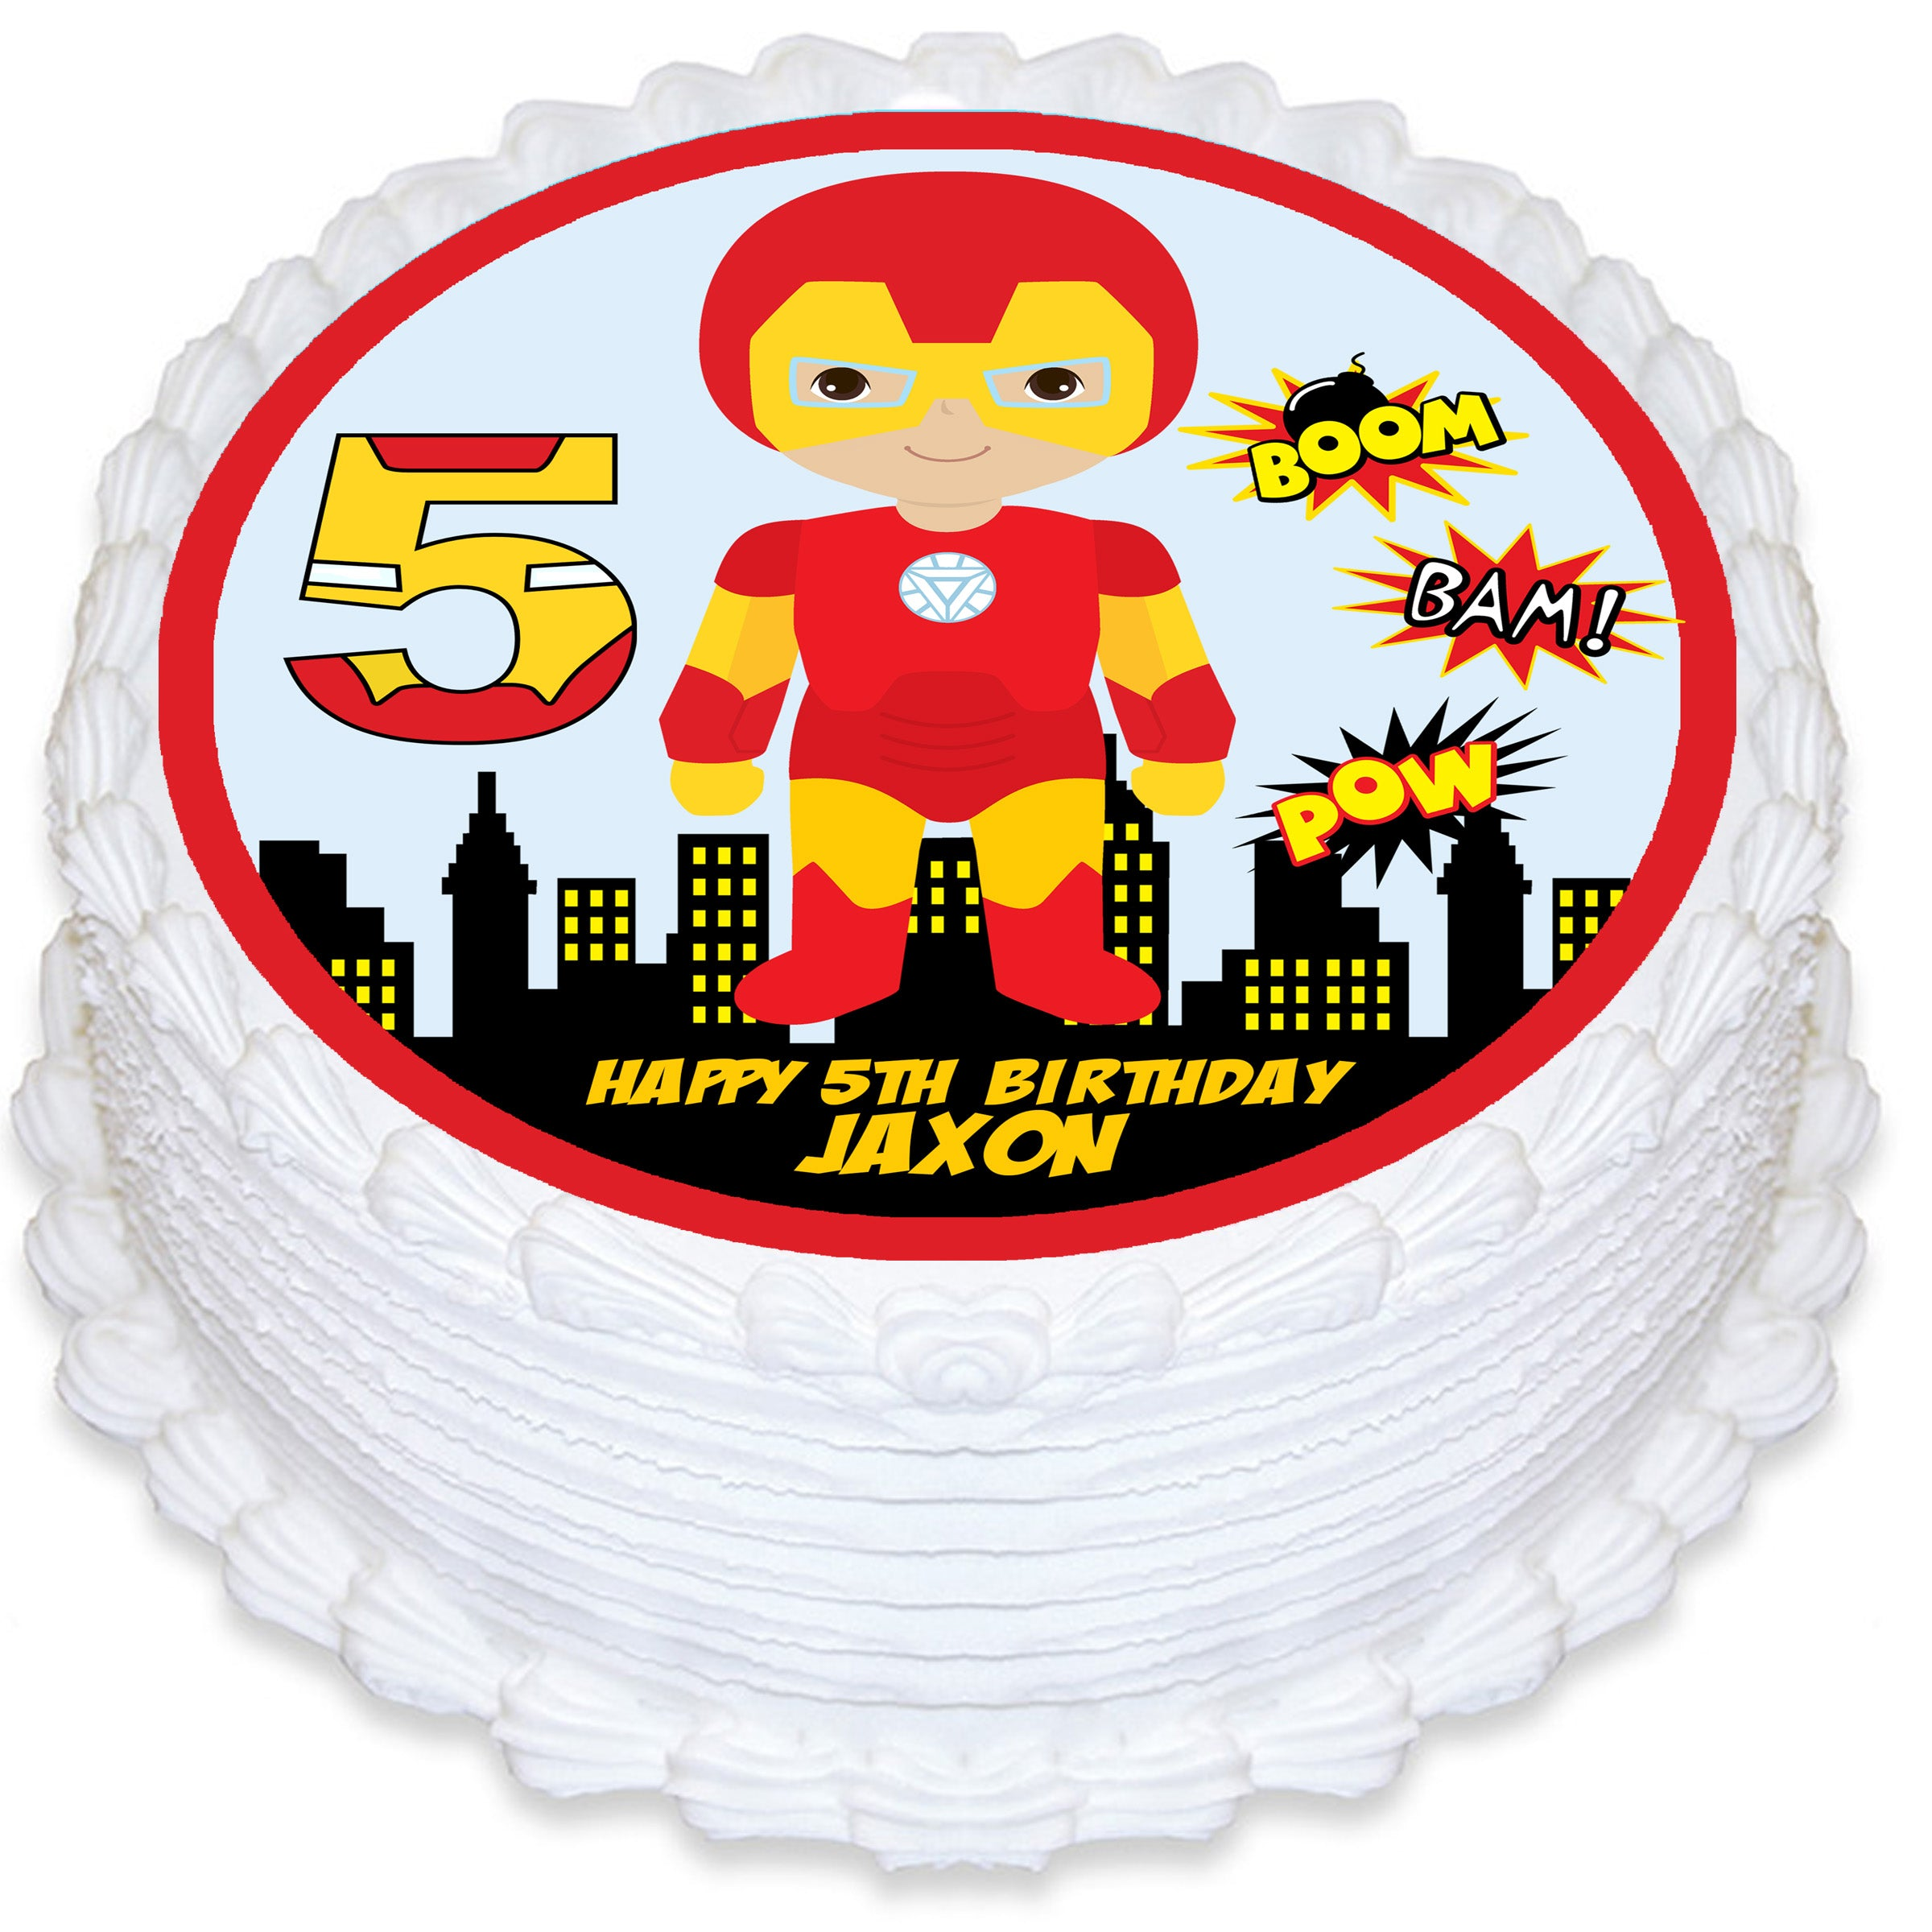 Excellent Ironman Round Edible Cake Topper Deezee Designs Funny Birthday Cards Online Inifodamsfinfo